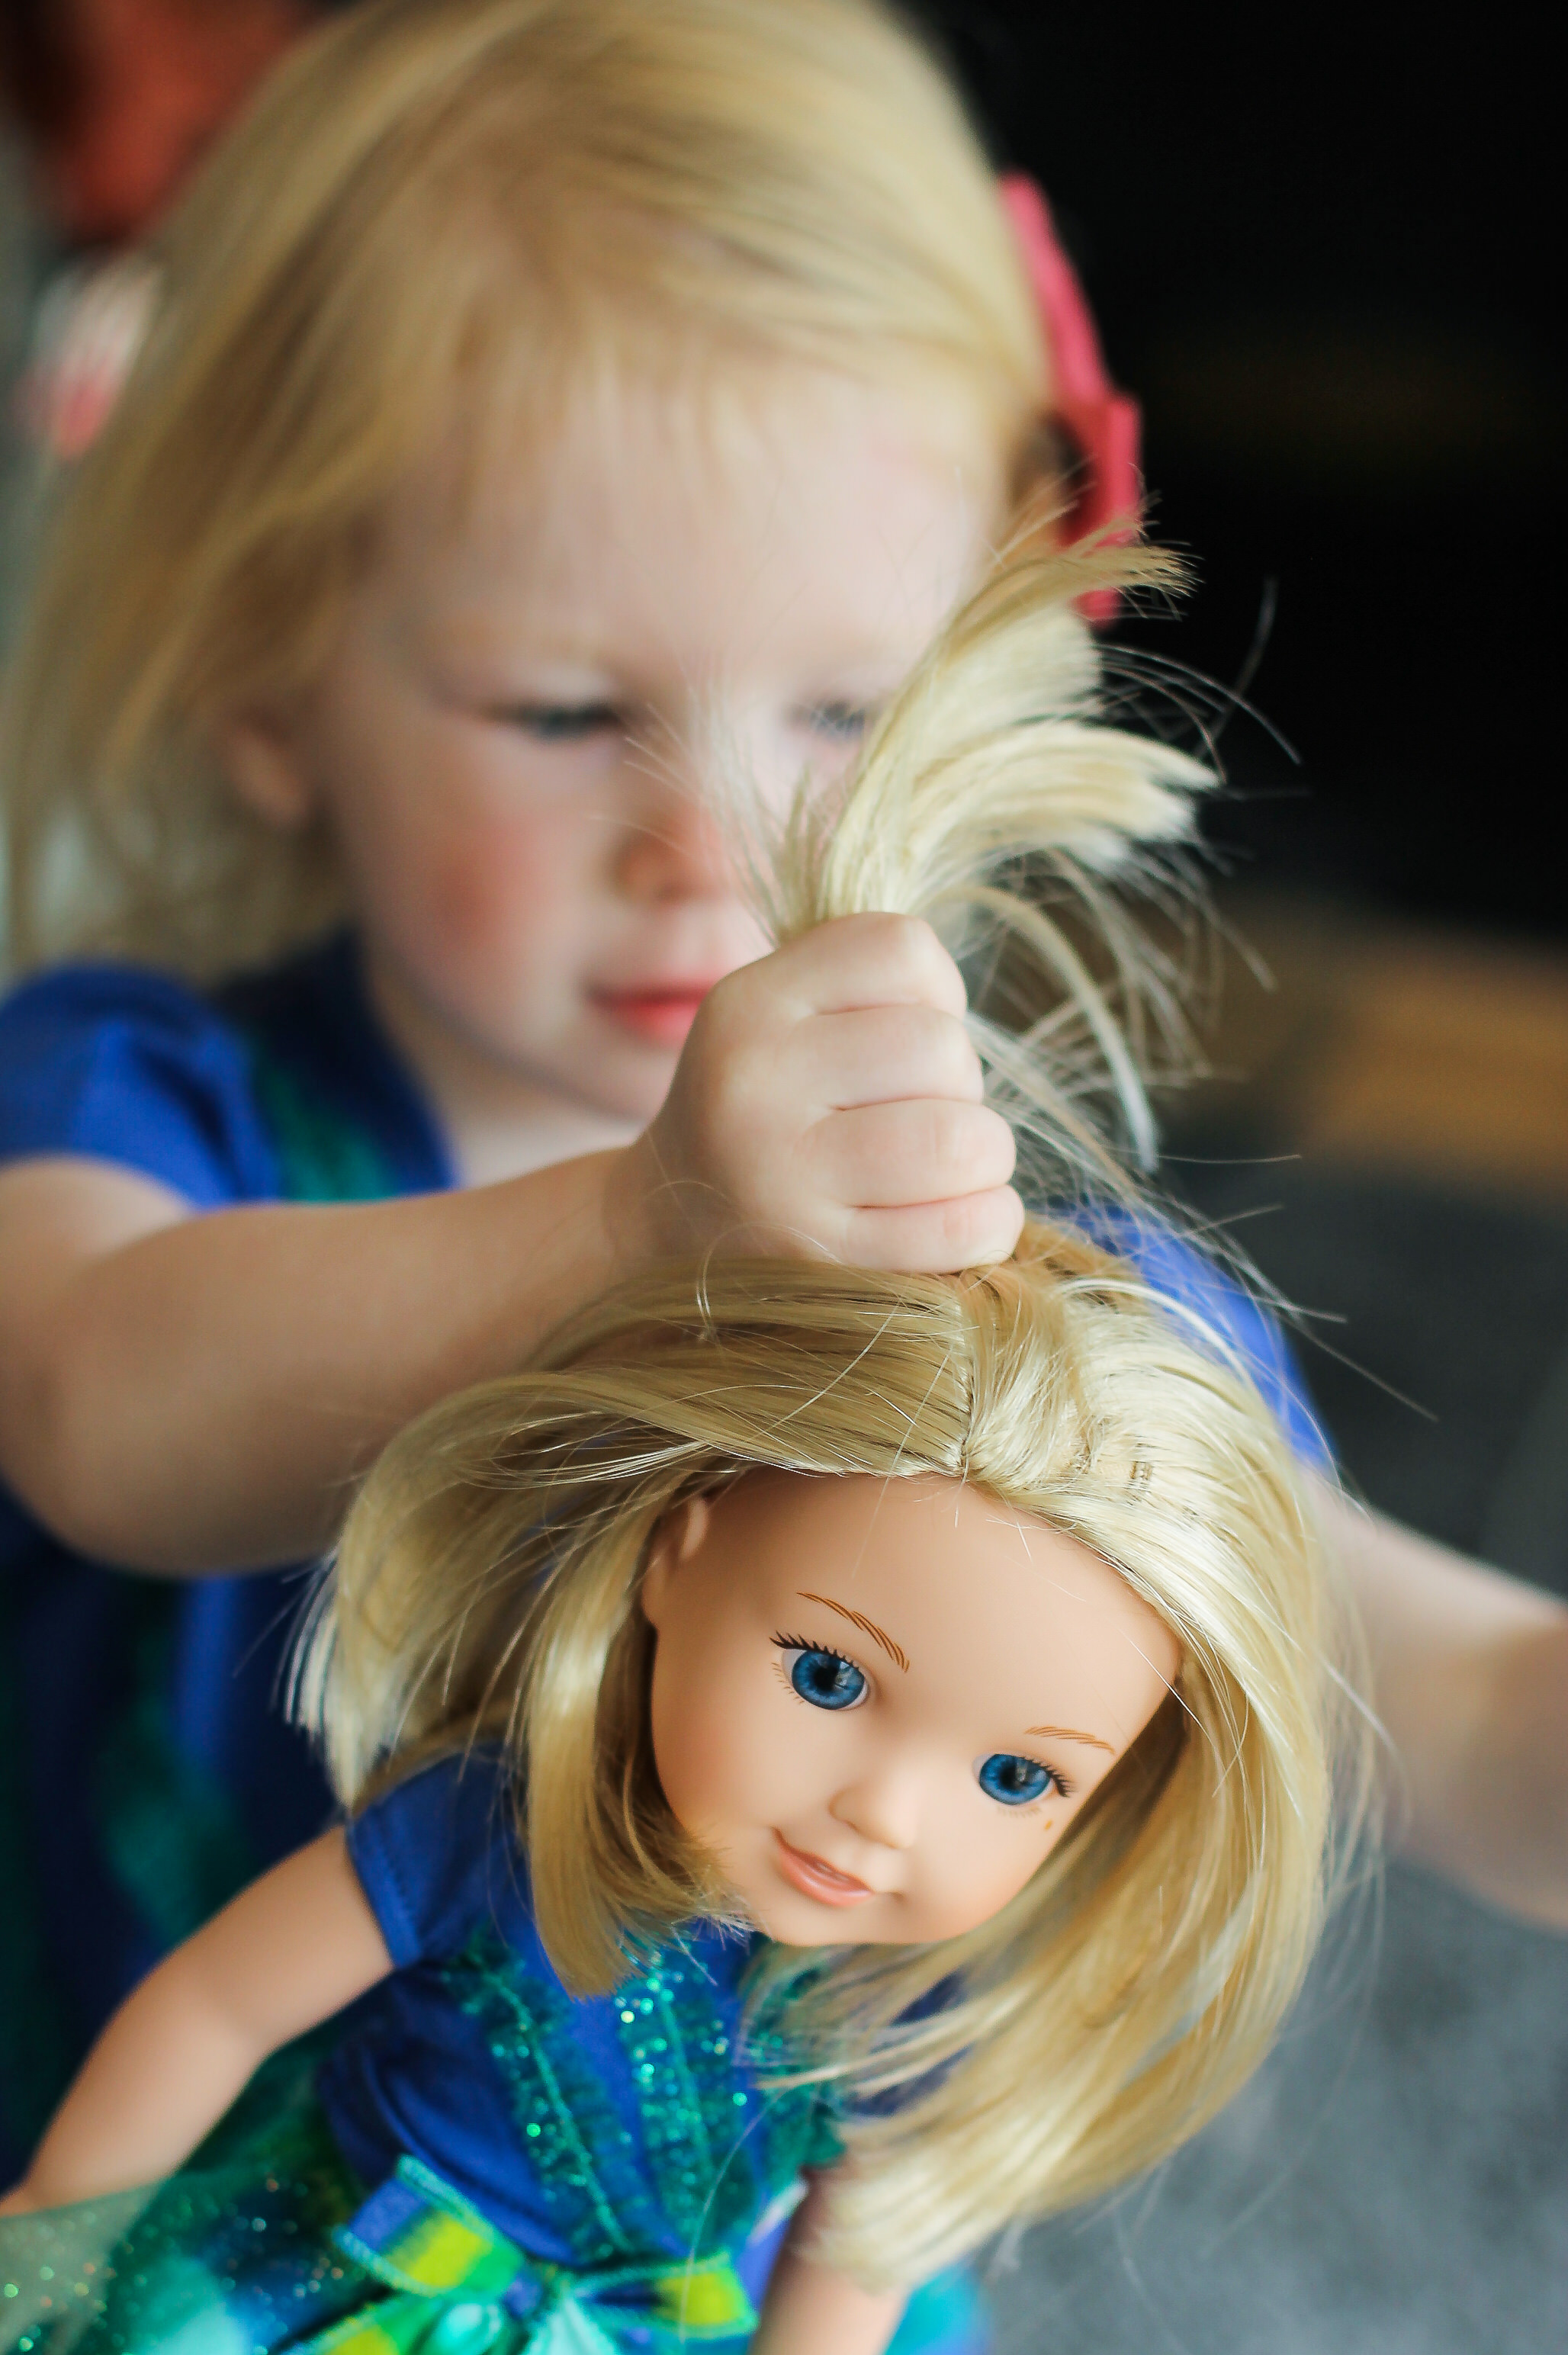 Does your little one LOVE American Girl Dolls? The new WellieWishers line is adorable, and we're giving one away!